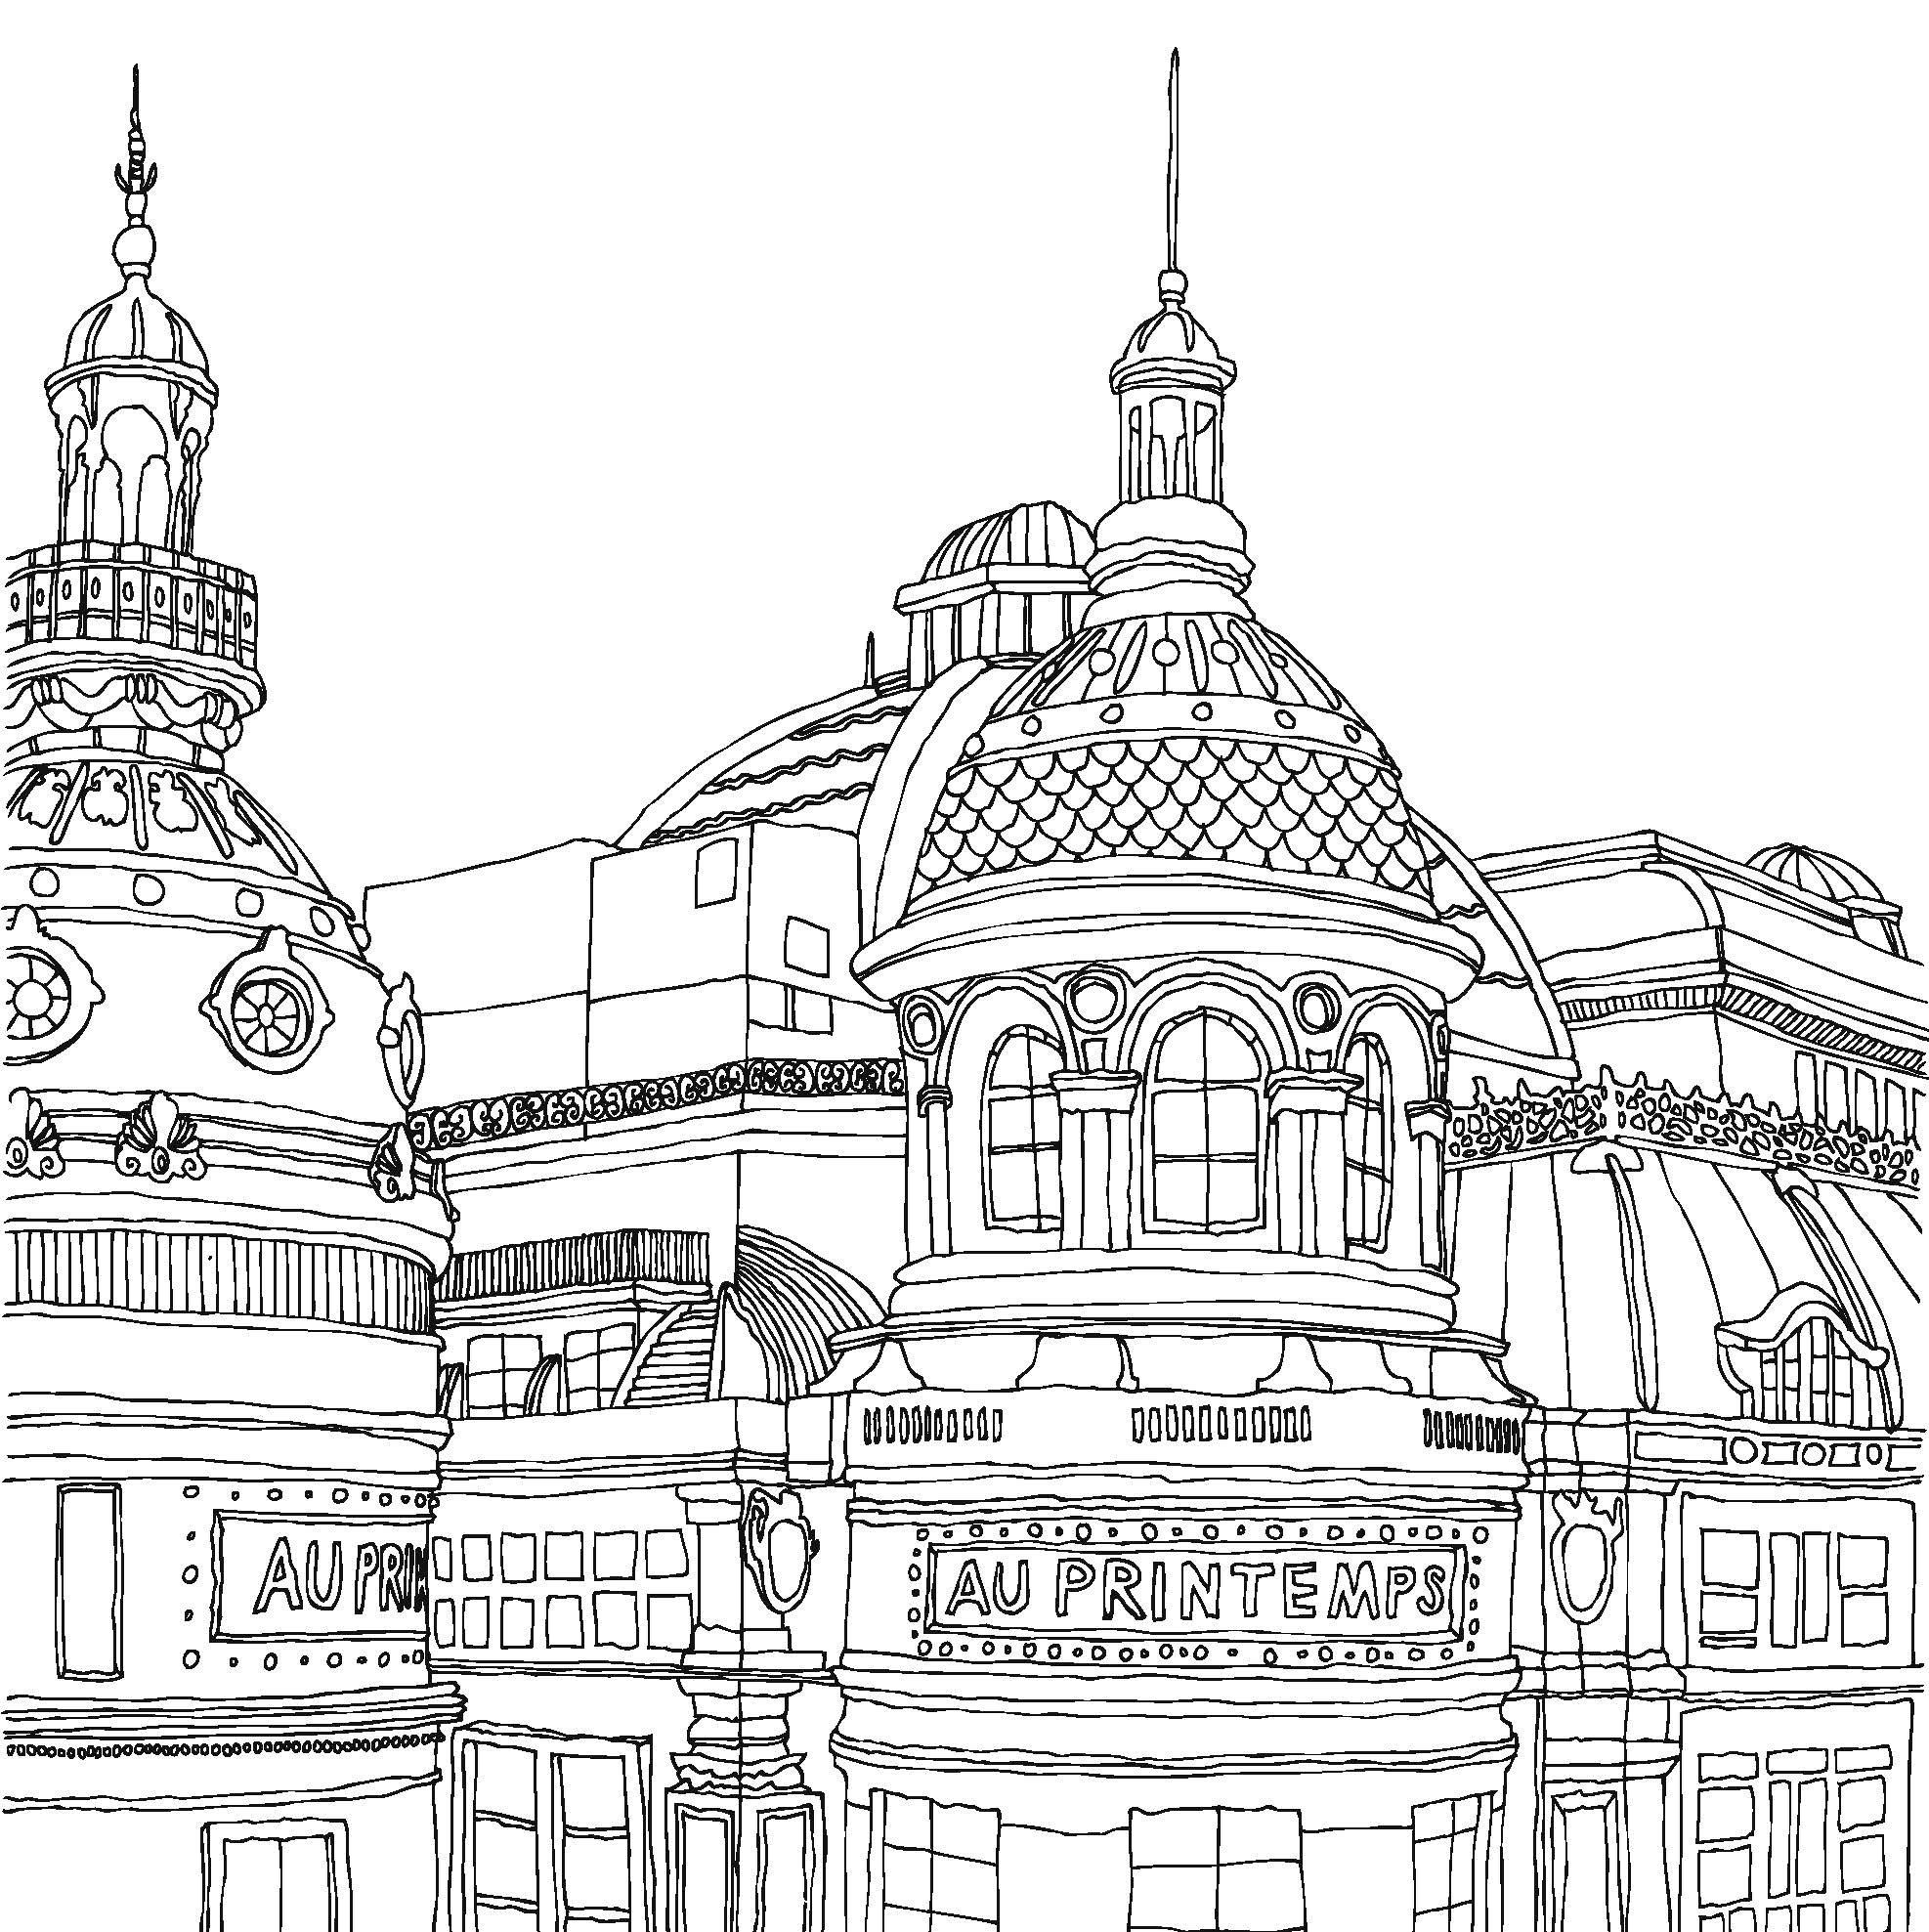 architecture coloring book pages | Au Printemps European architecture adult coloring page ...